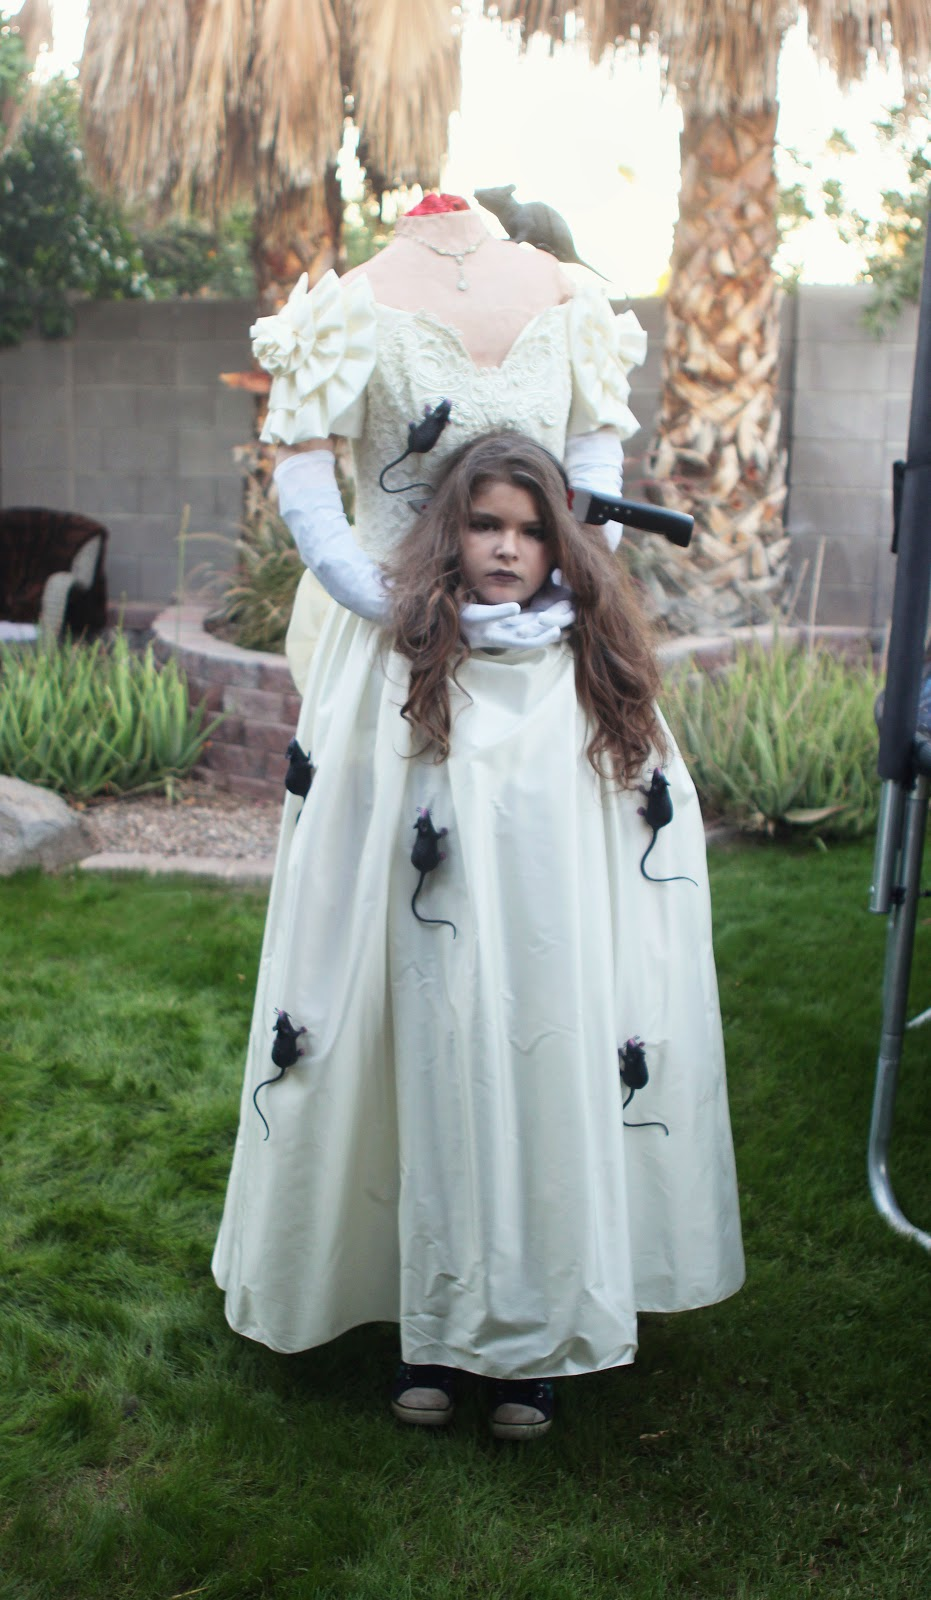 This costume may be a little gruesome for some  sc 1 st  jill and the little crown & jill and the little crown: How to make a headless costume!